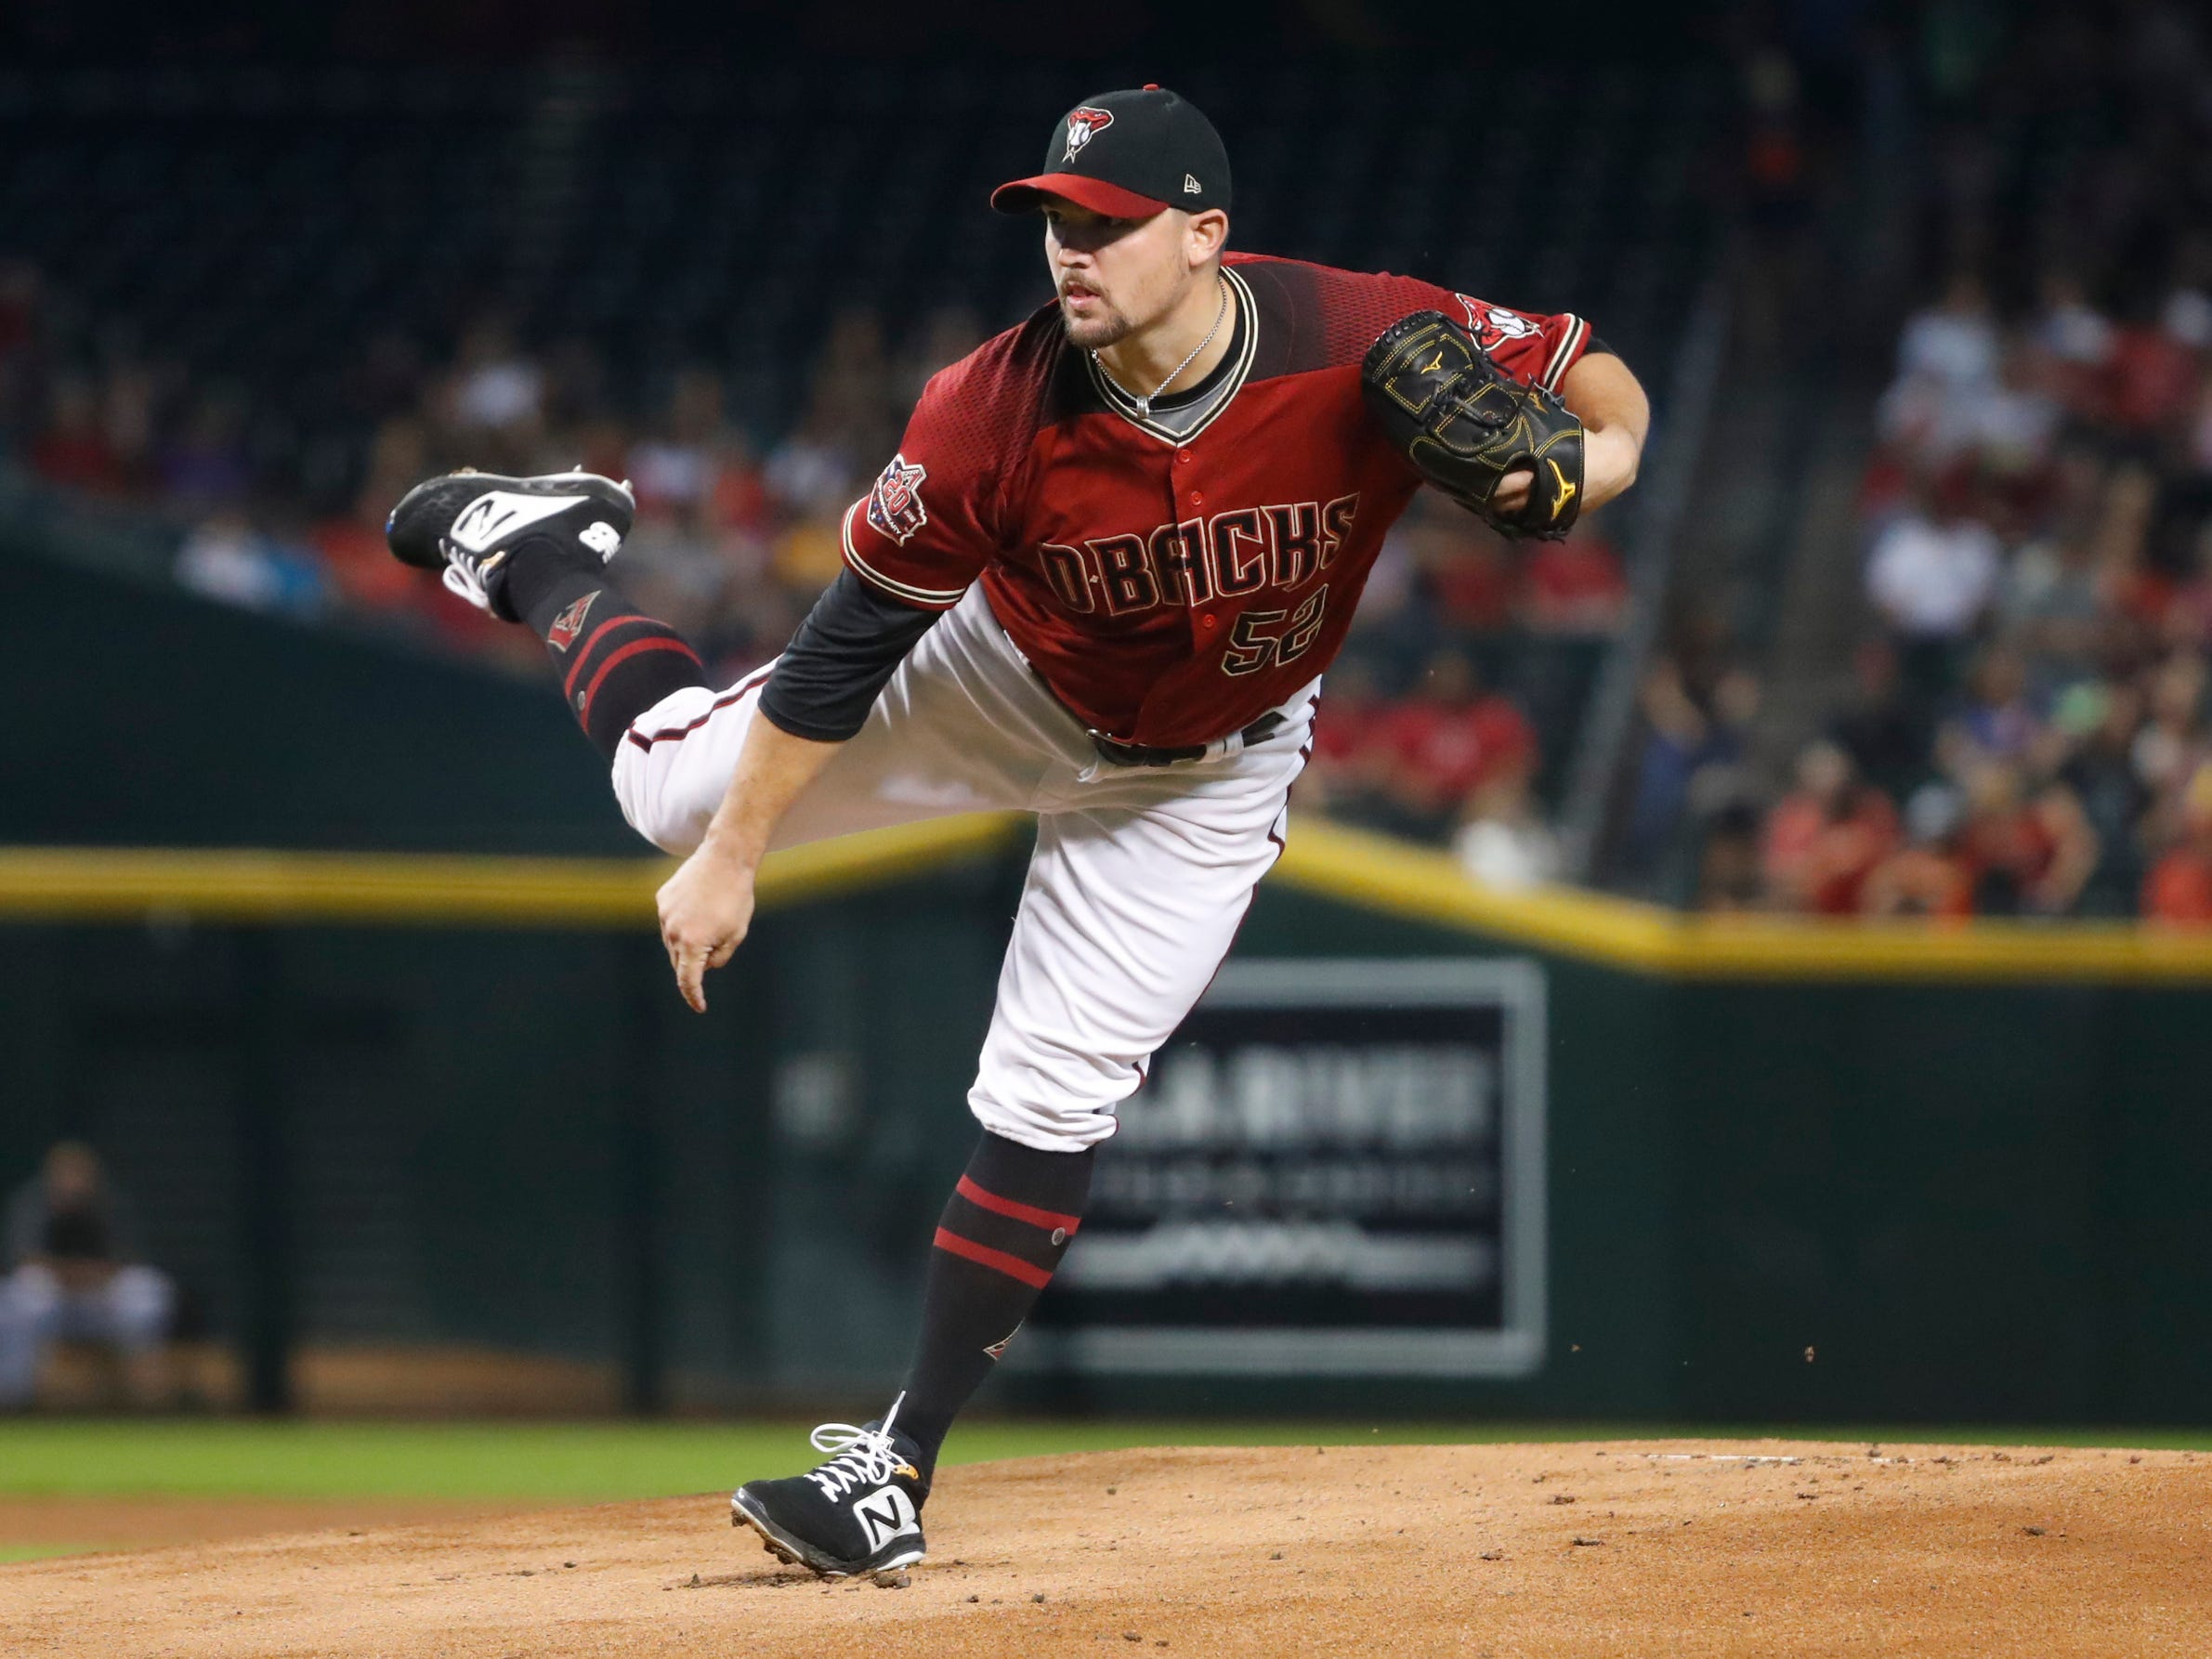 Diamondbacks Zack Godley (52) pitches against the Rockies during the first inning at Chase Field on Sept. 23, 2018.